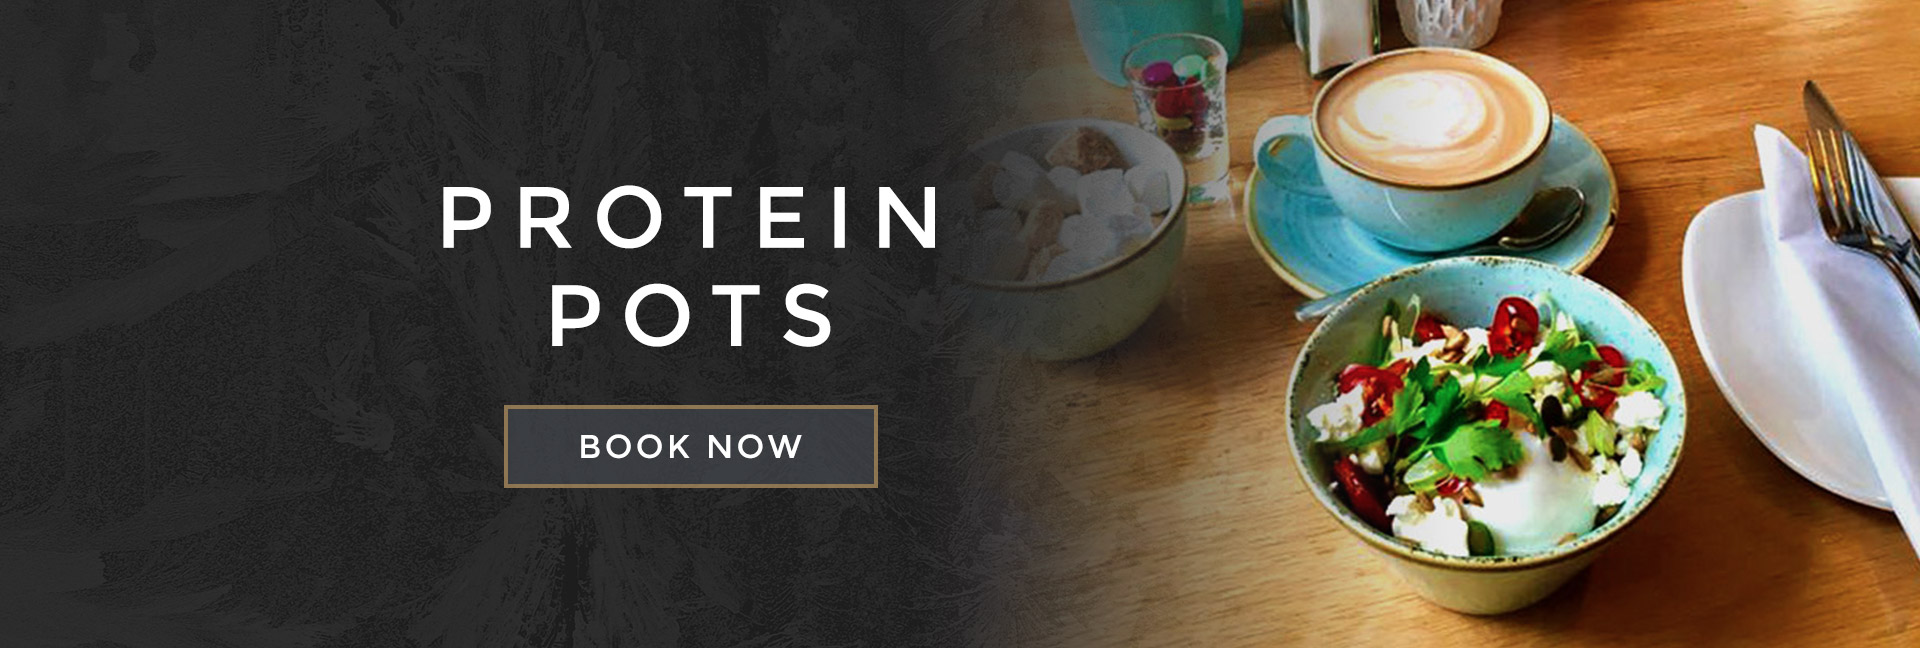 Protein pots at All Bar One The O2 - Book your table